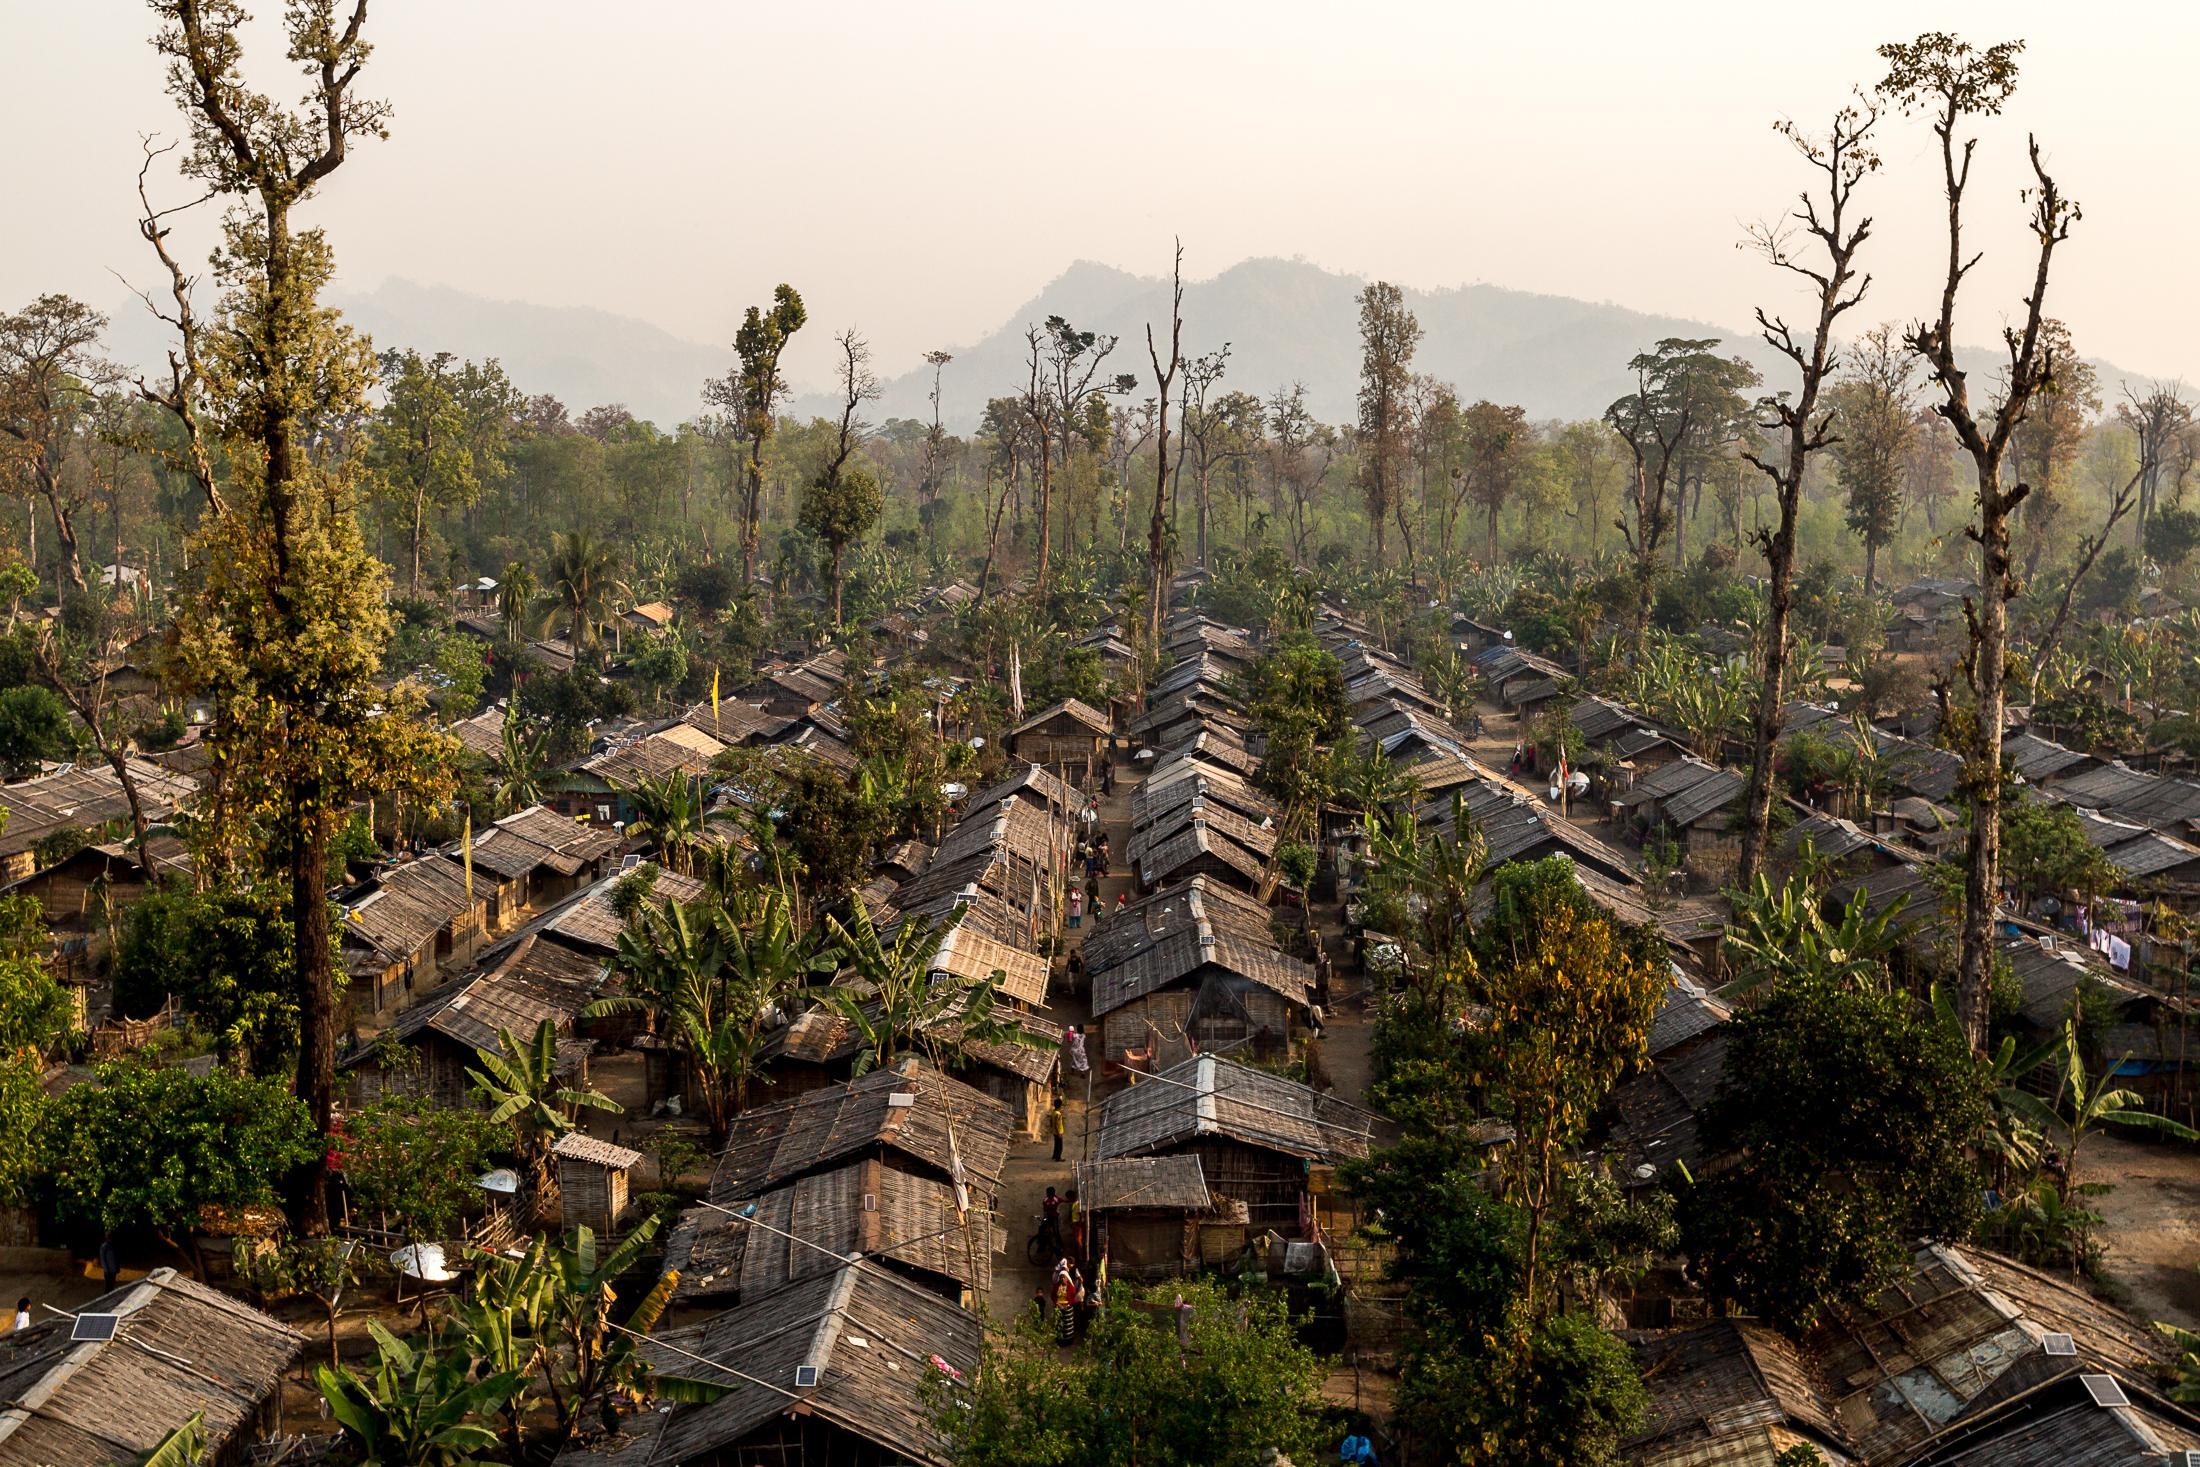 BELDANGI, NEPAL - MARCH 13: More than 4500 huts are built inside the Beldangi 2 refugee camp where more than 18,000 refugees live on March 13, 2015 in Beldangi, Nepal. Photo: © Omar Havana / Getty Images.